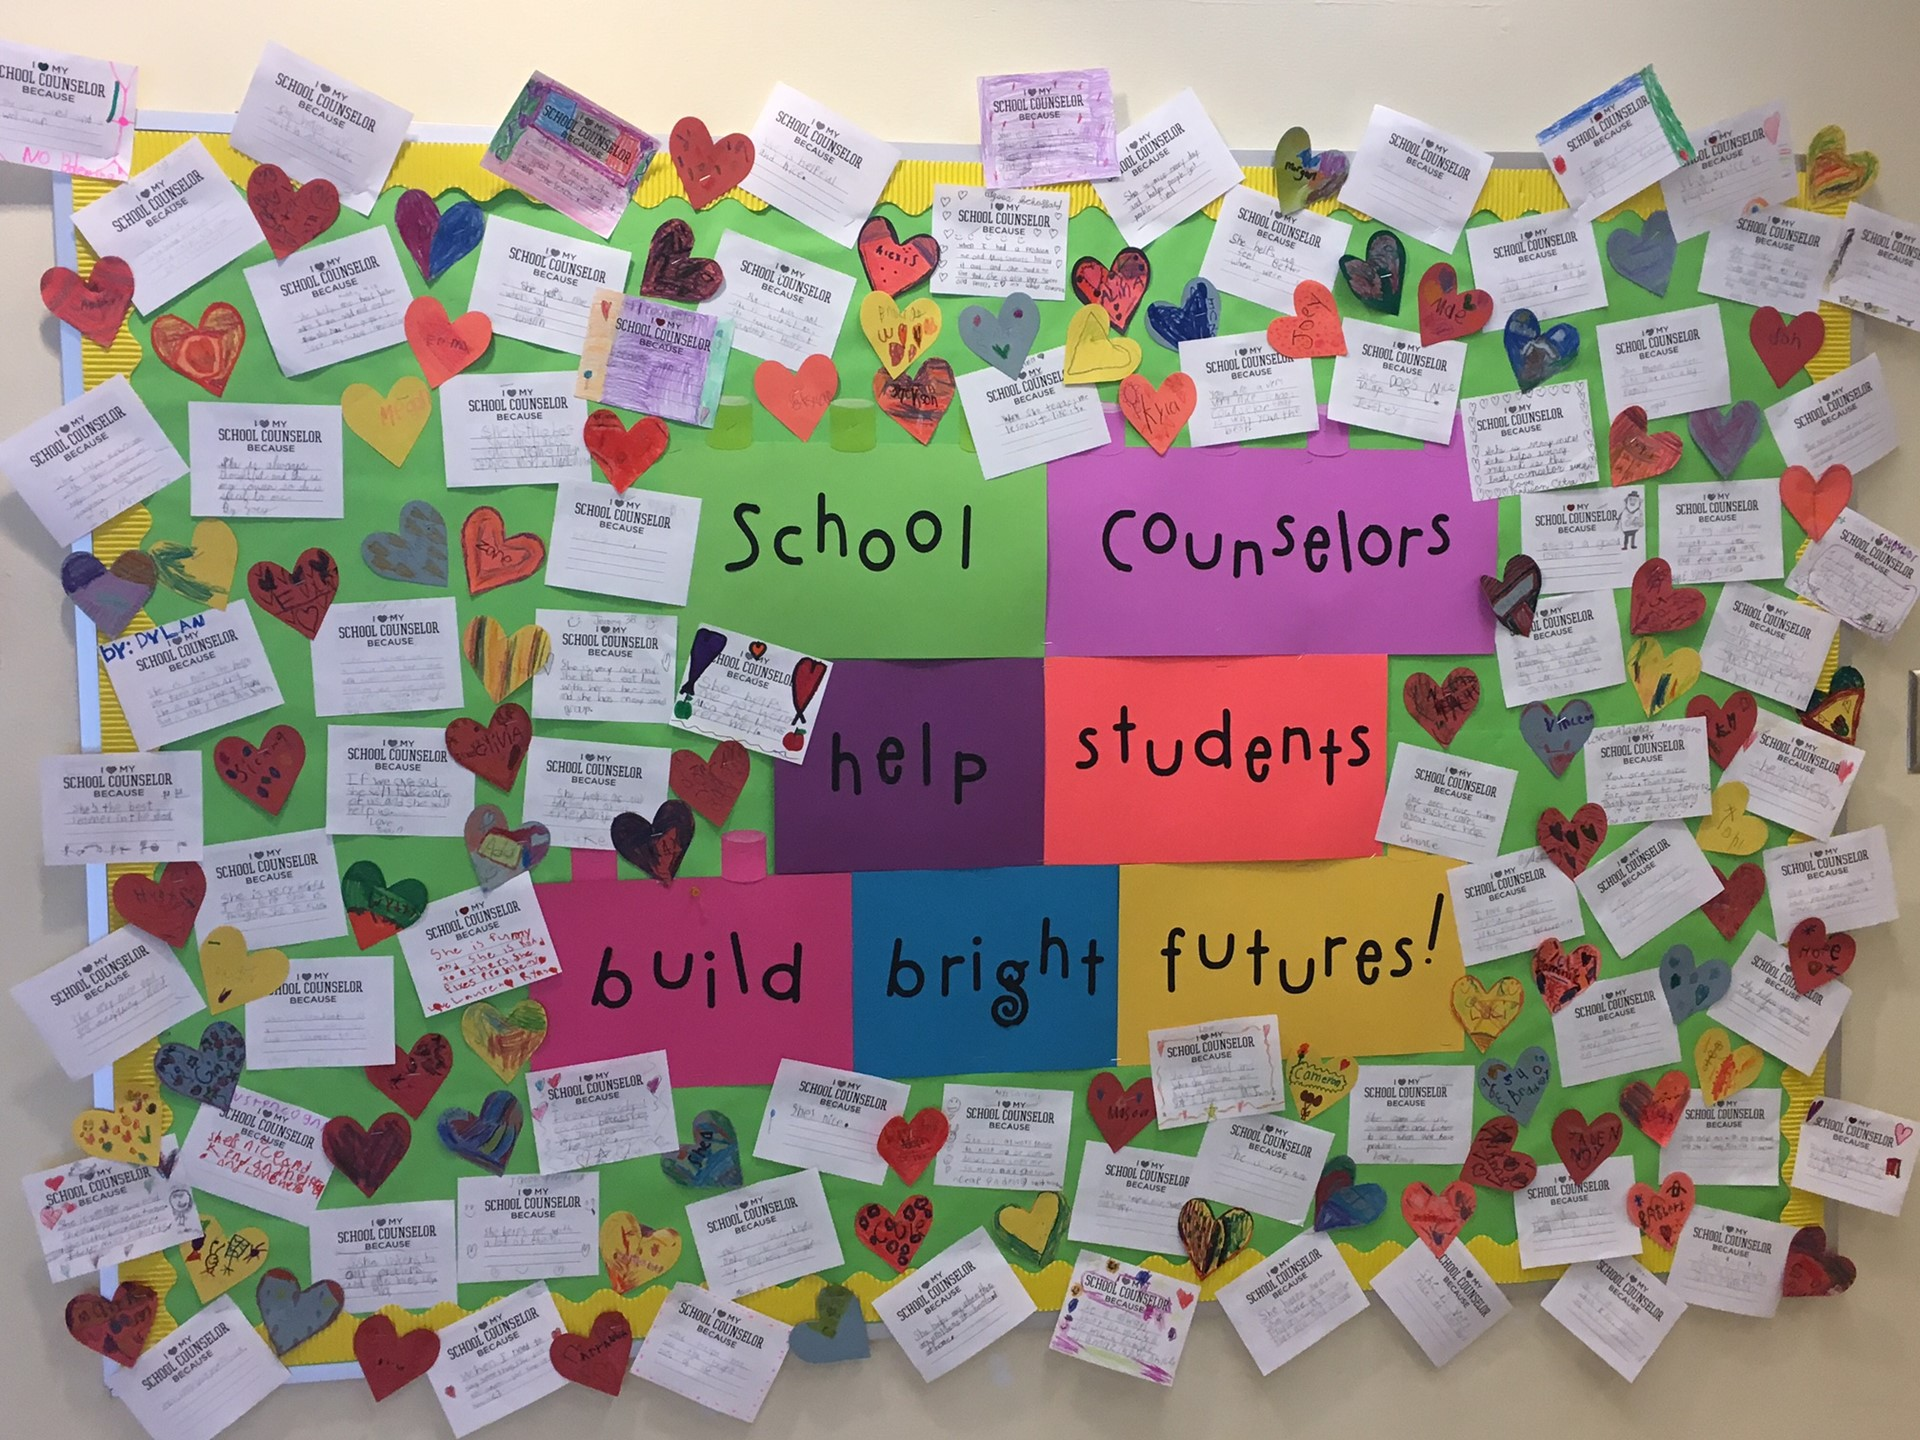 Celebrating School Counselors Week